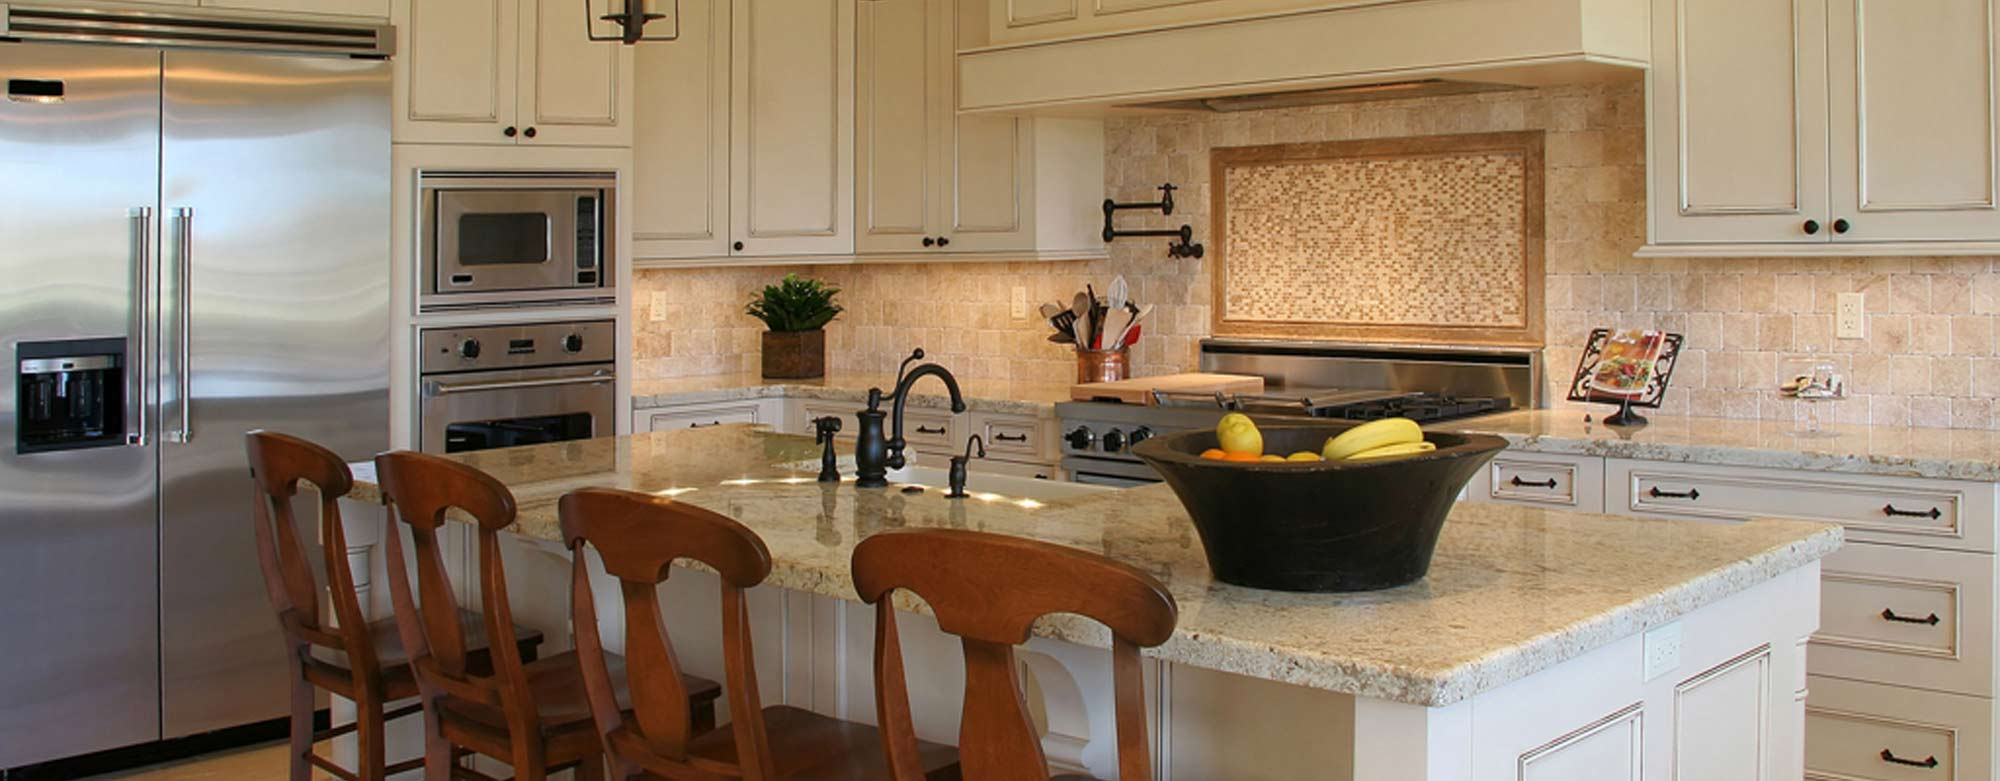 Granite Colors For Kitchen Countertops As Per Vastu : Granite Countertops Baltimore Maryland Starting at $29.99 Per Sf HB ...